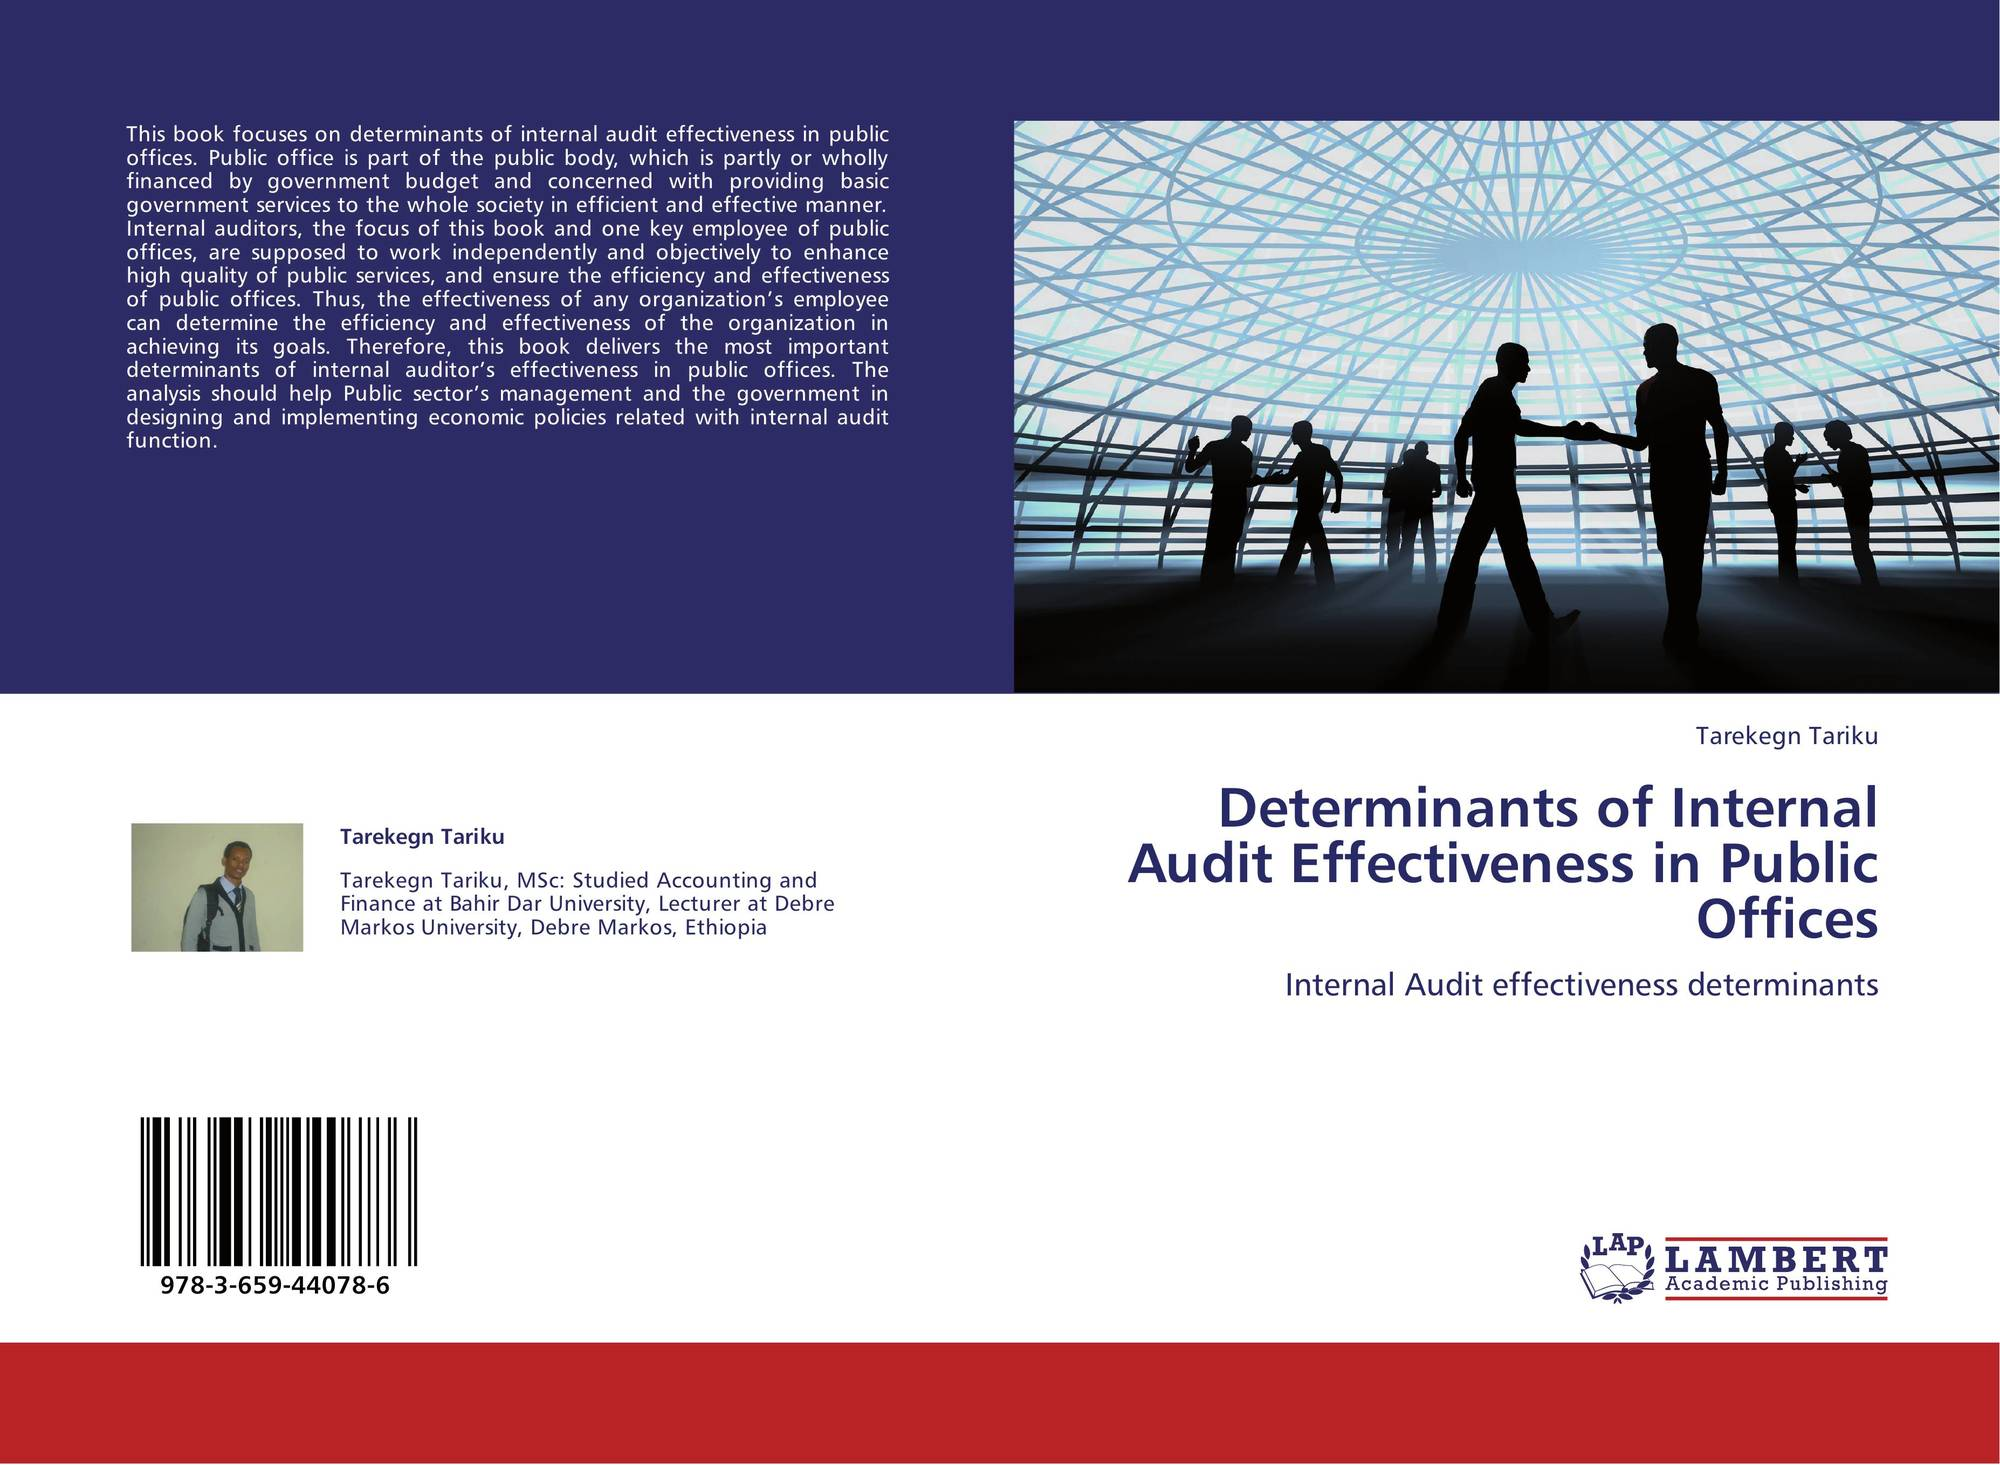 audit dissertation effectiveness government in internal Authors review some questions included in a questionnaire regarding the effectiveness of internal audit within the scope of quality management ma thesis.